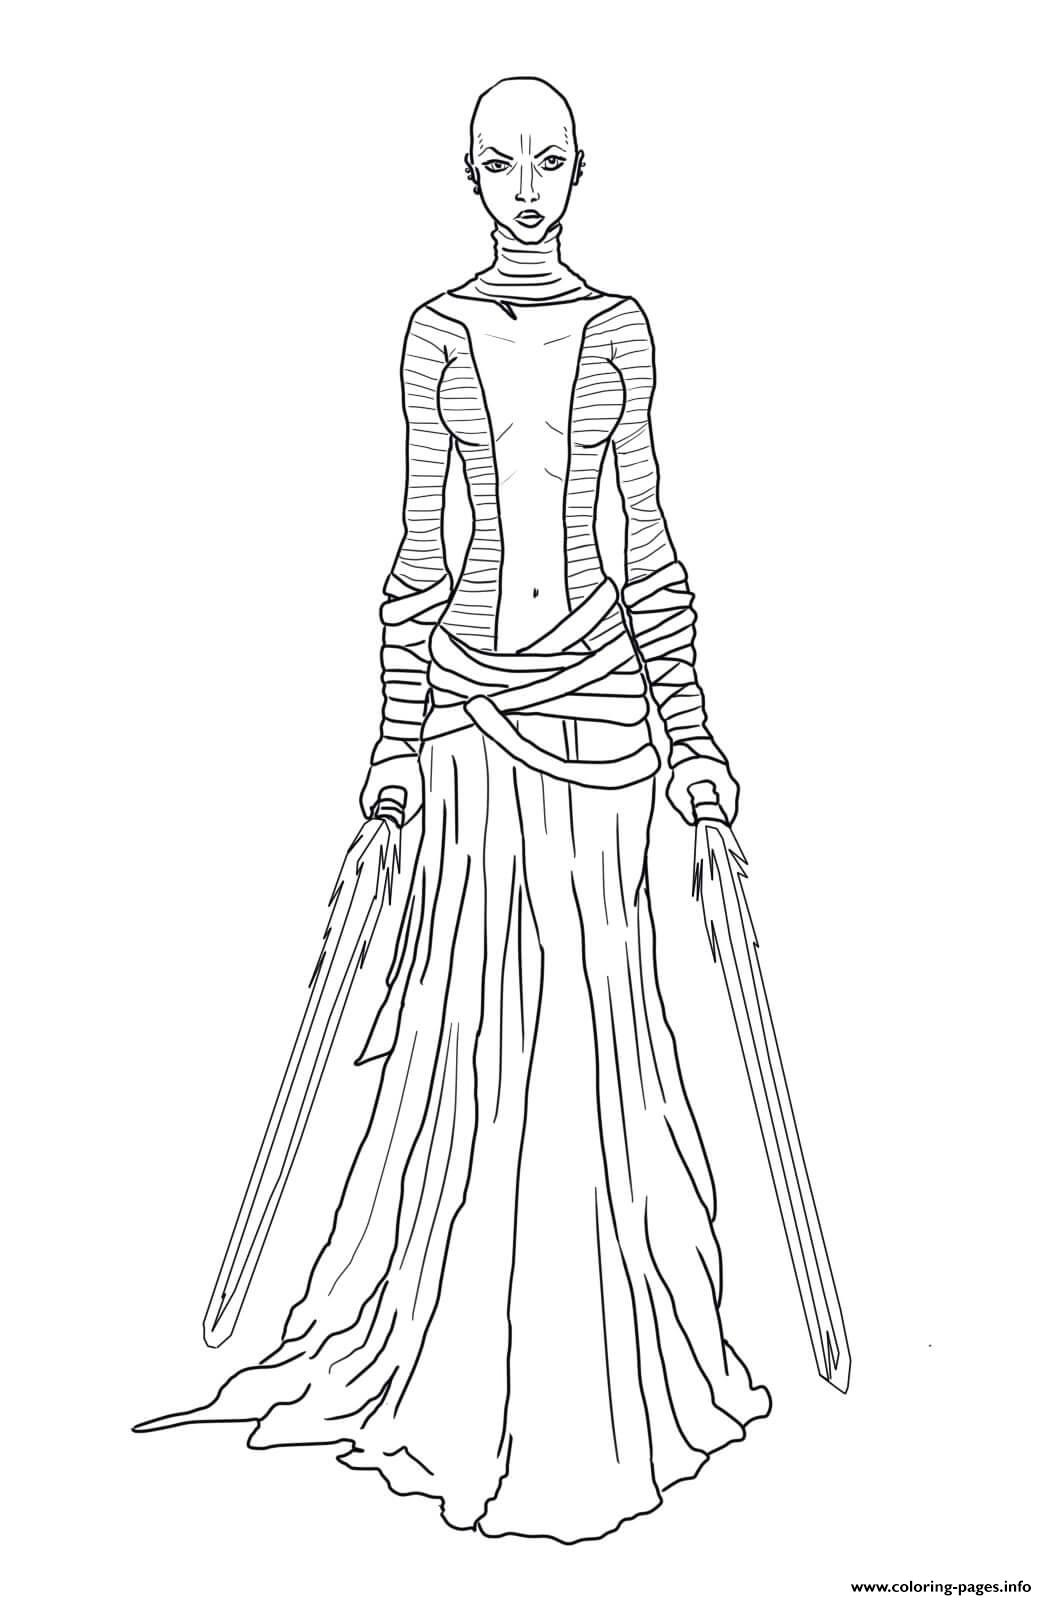 Asajj Ventress Star Wars The Clone Wars coloring pages